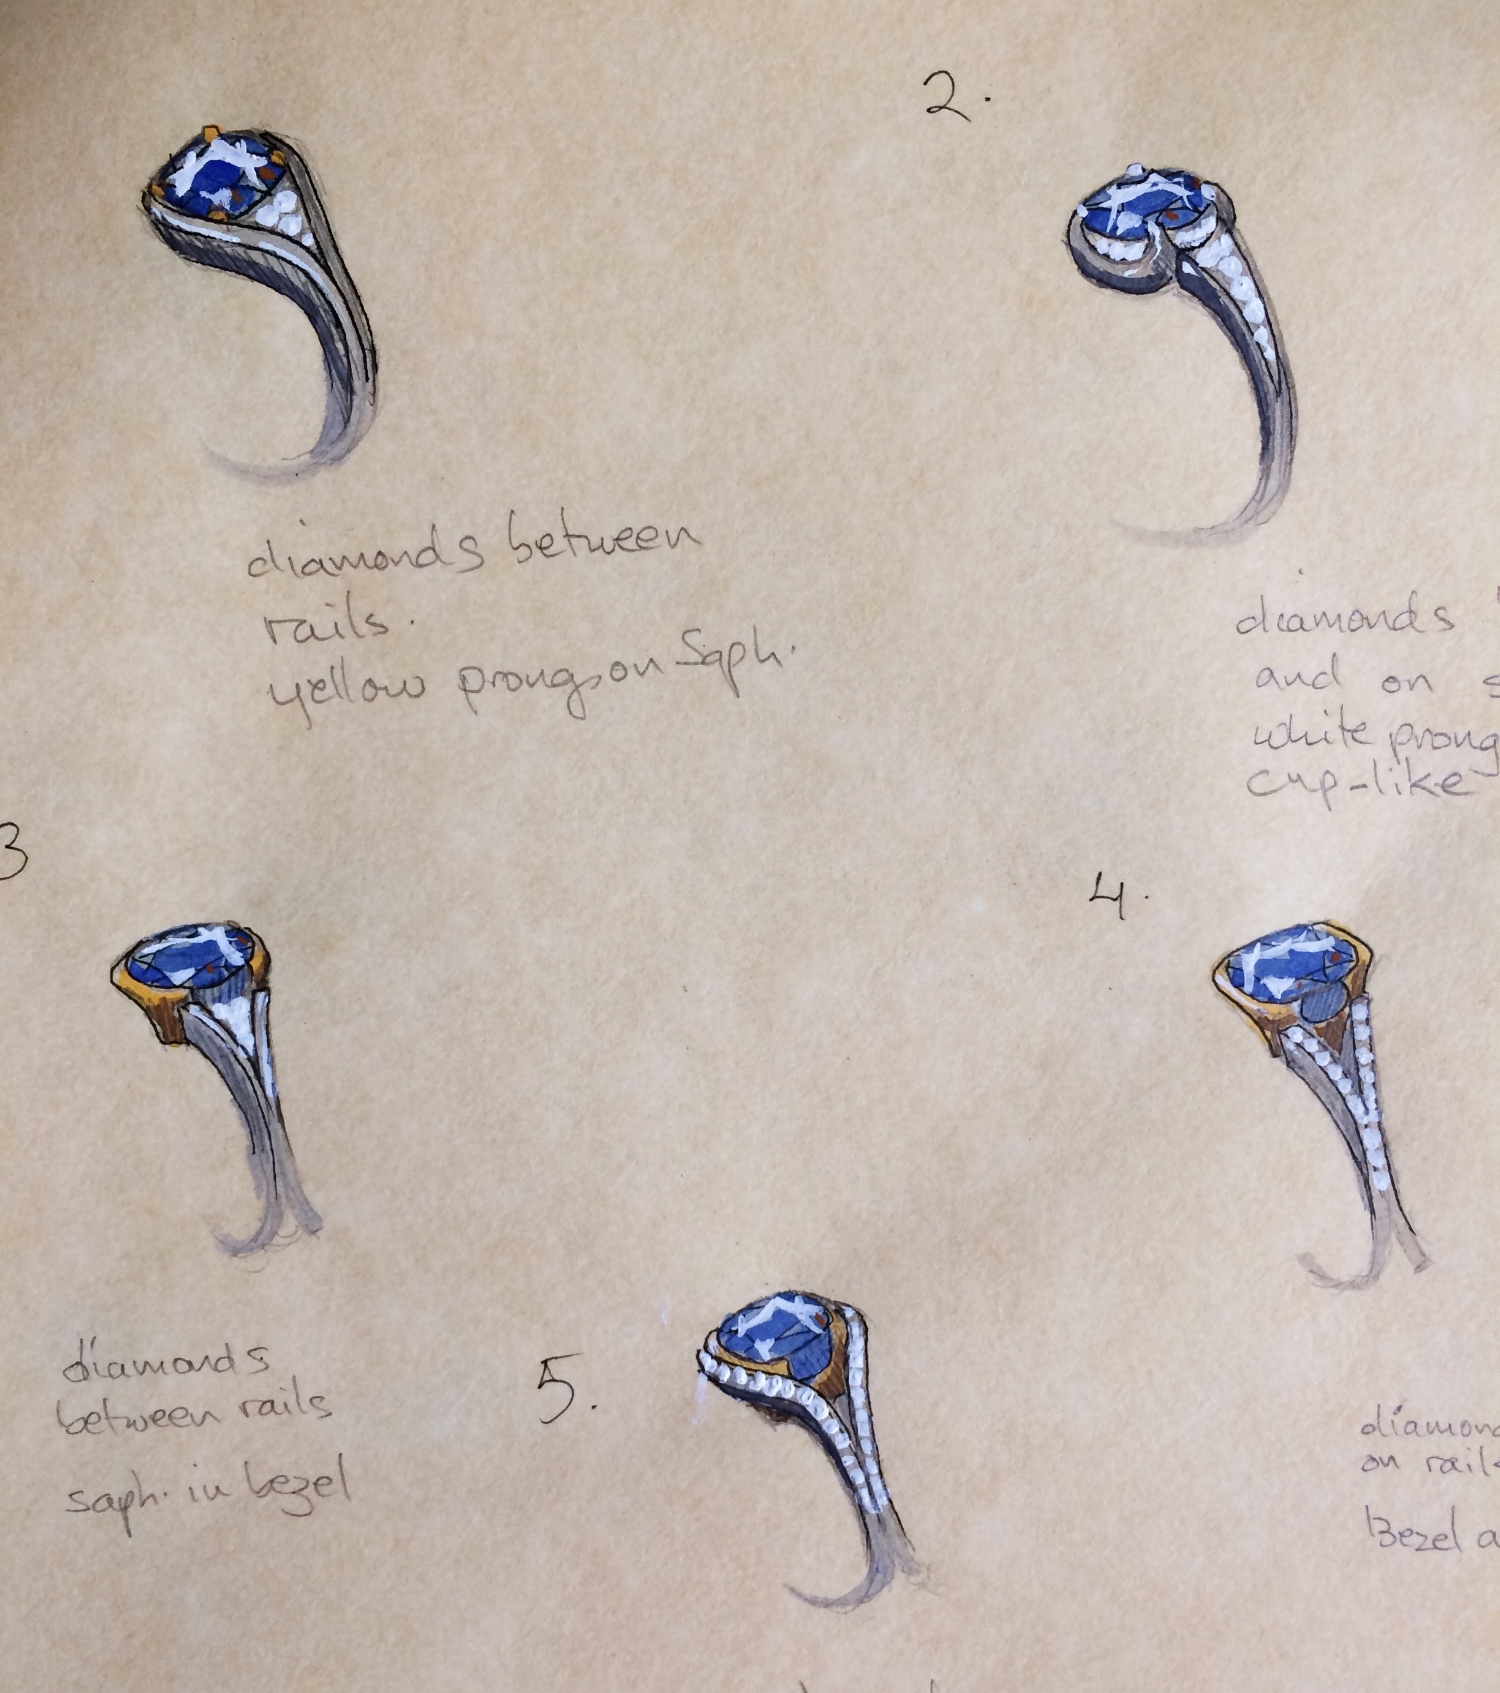 Initial drawings for an engagement ring